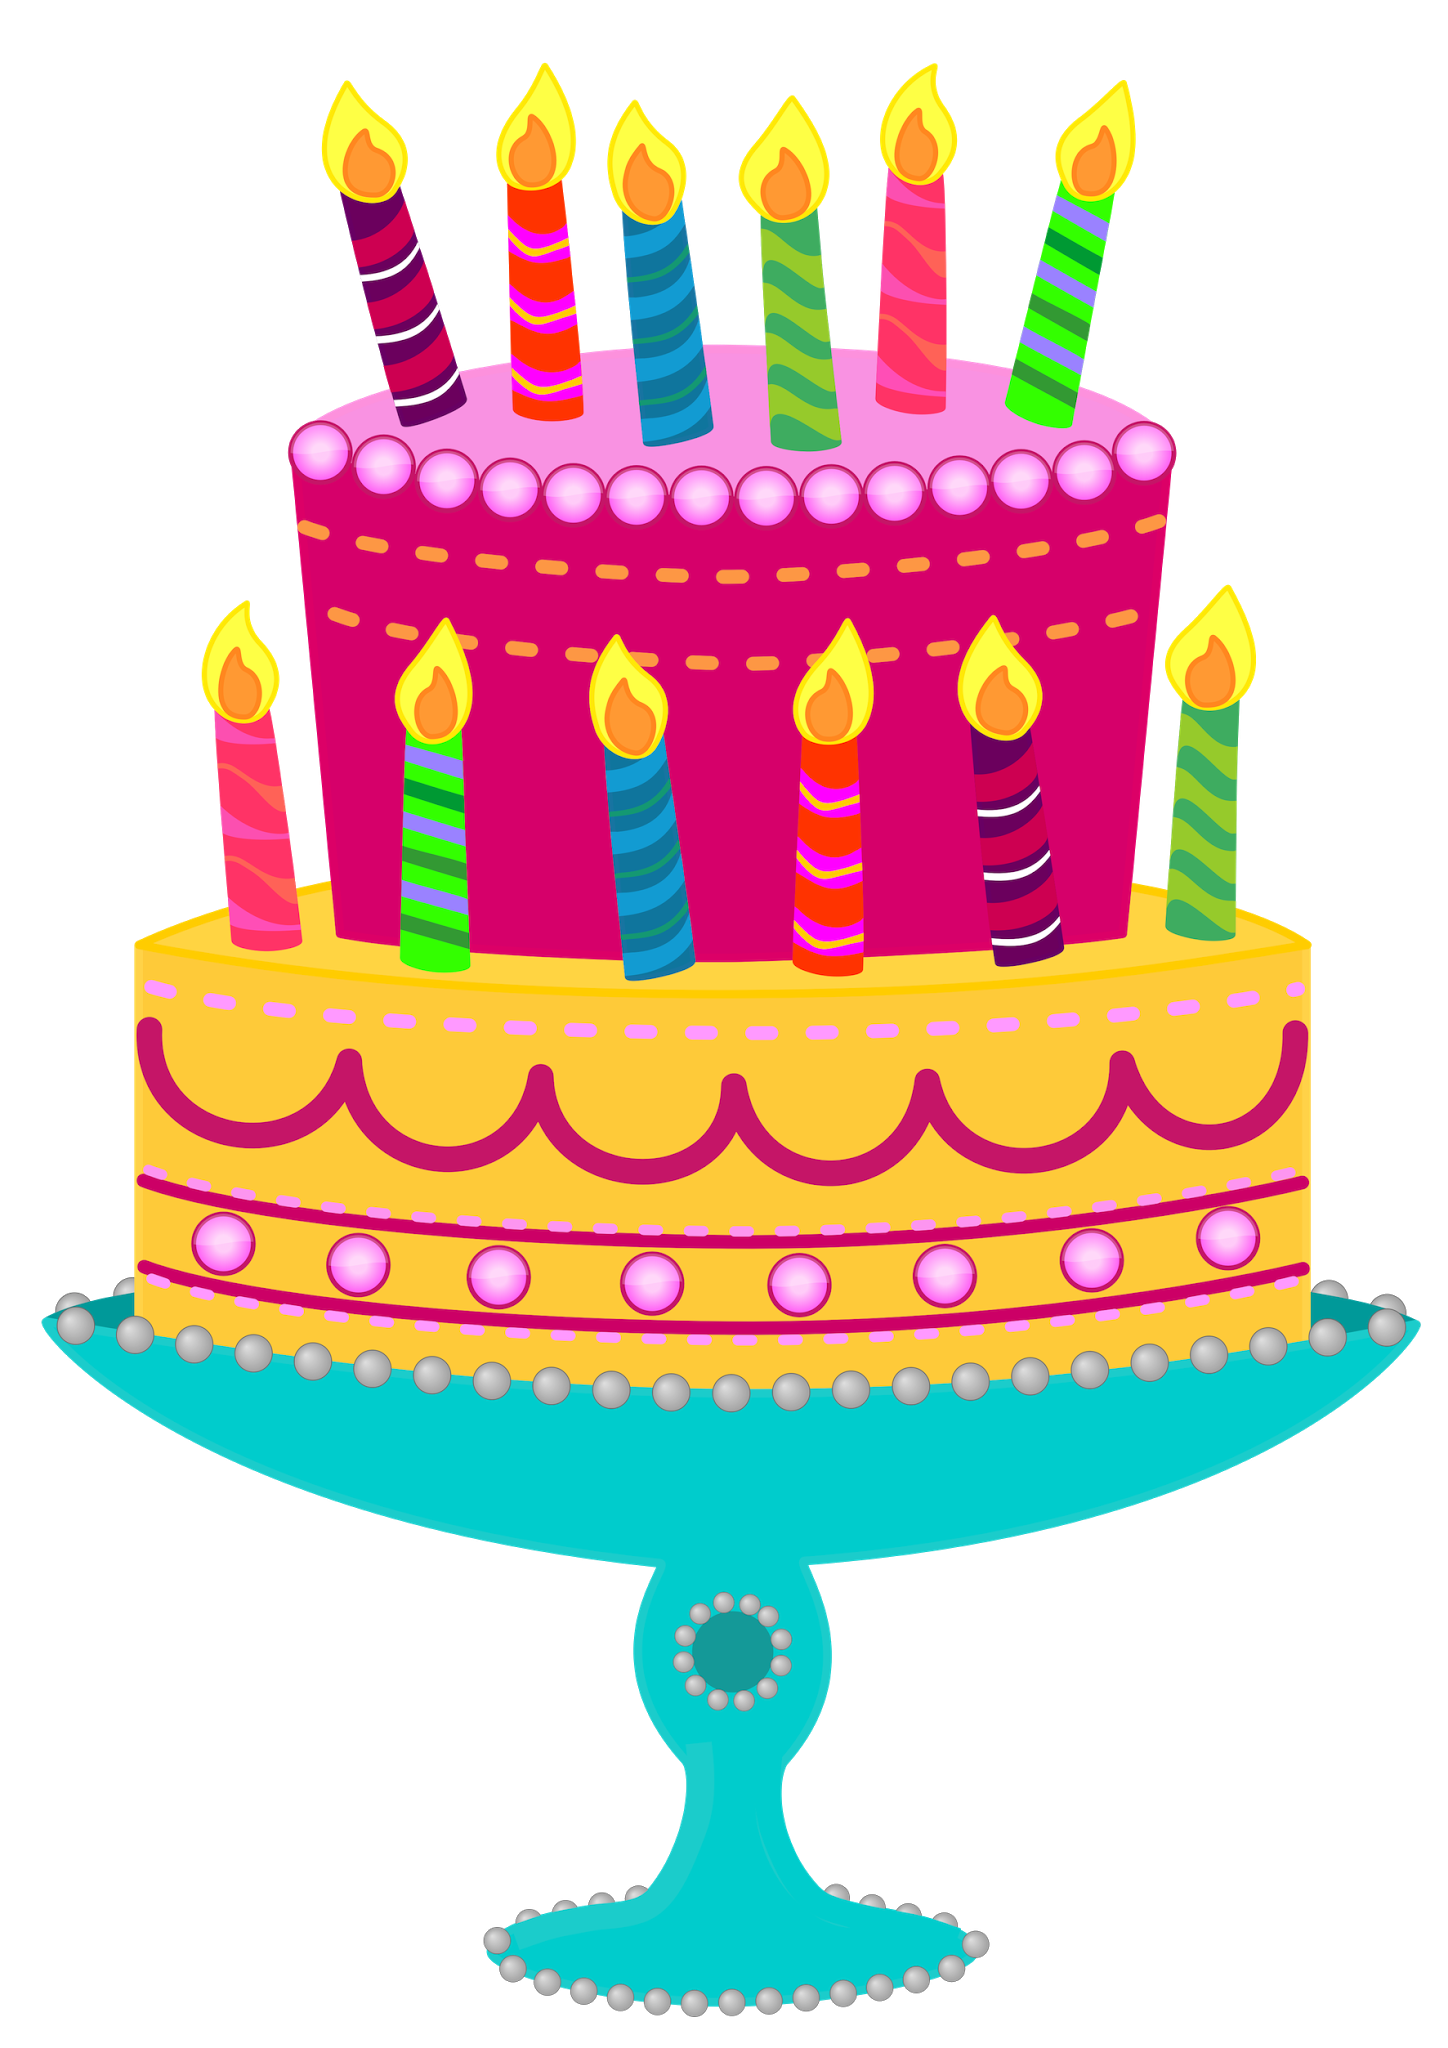 Free Cake Images - Cliparts.co | Paper Images | Pinterest ...